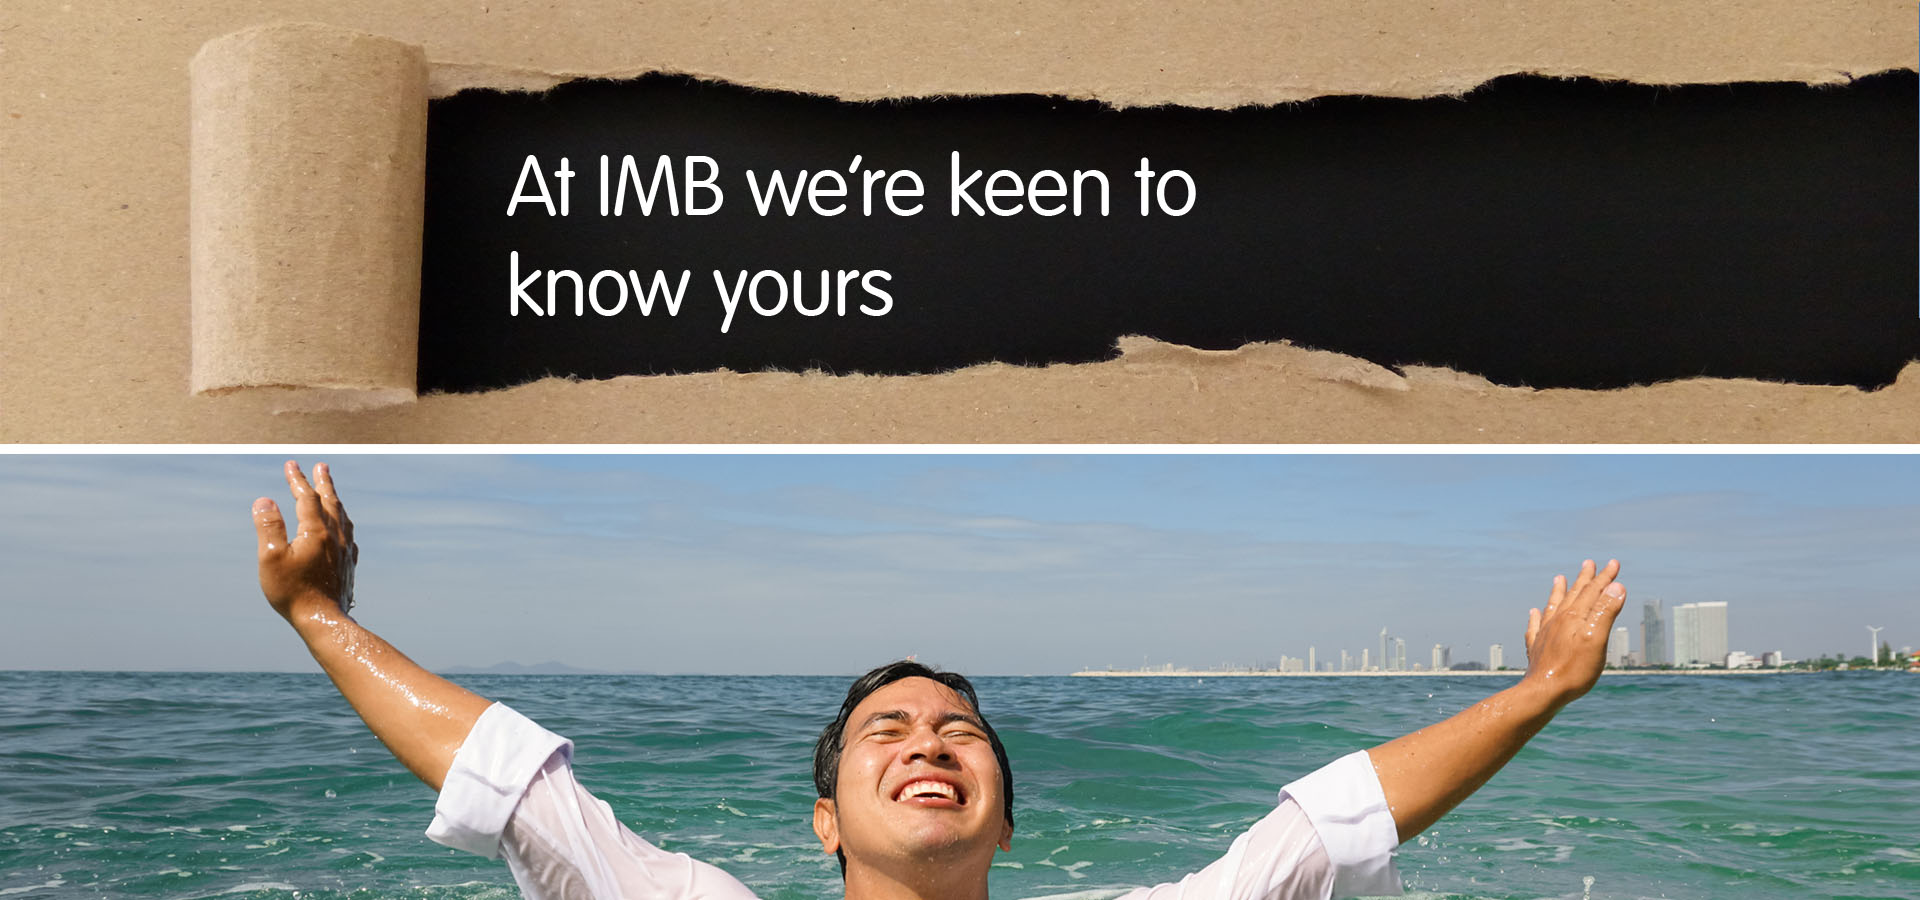 IMB Bank | At IMB we're keen to know yours